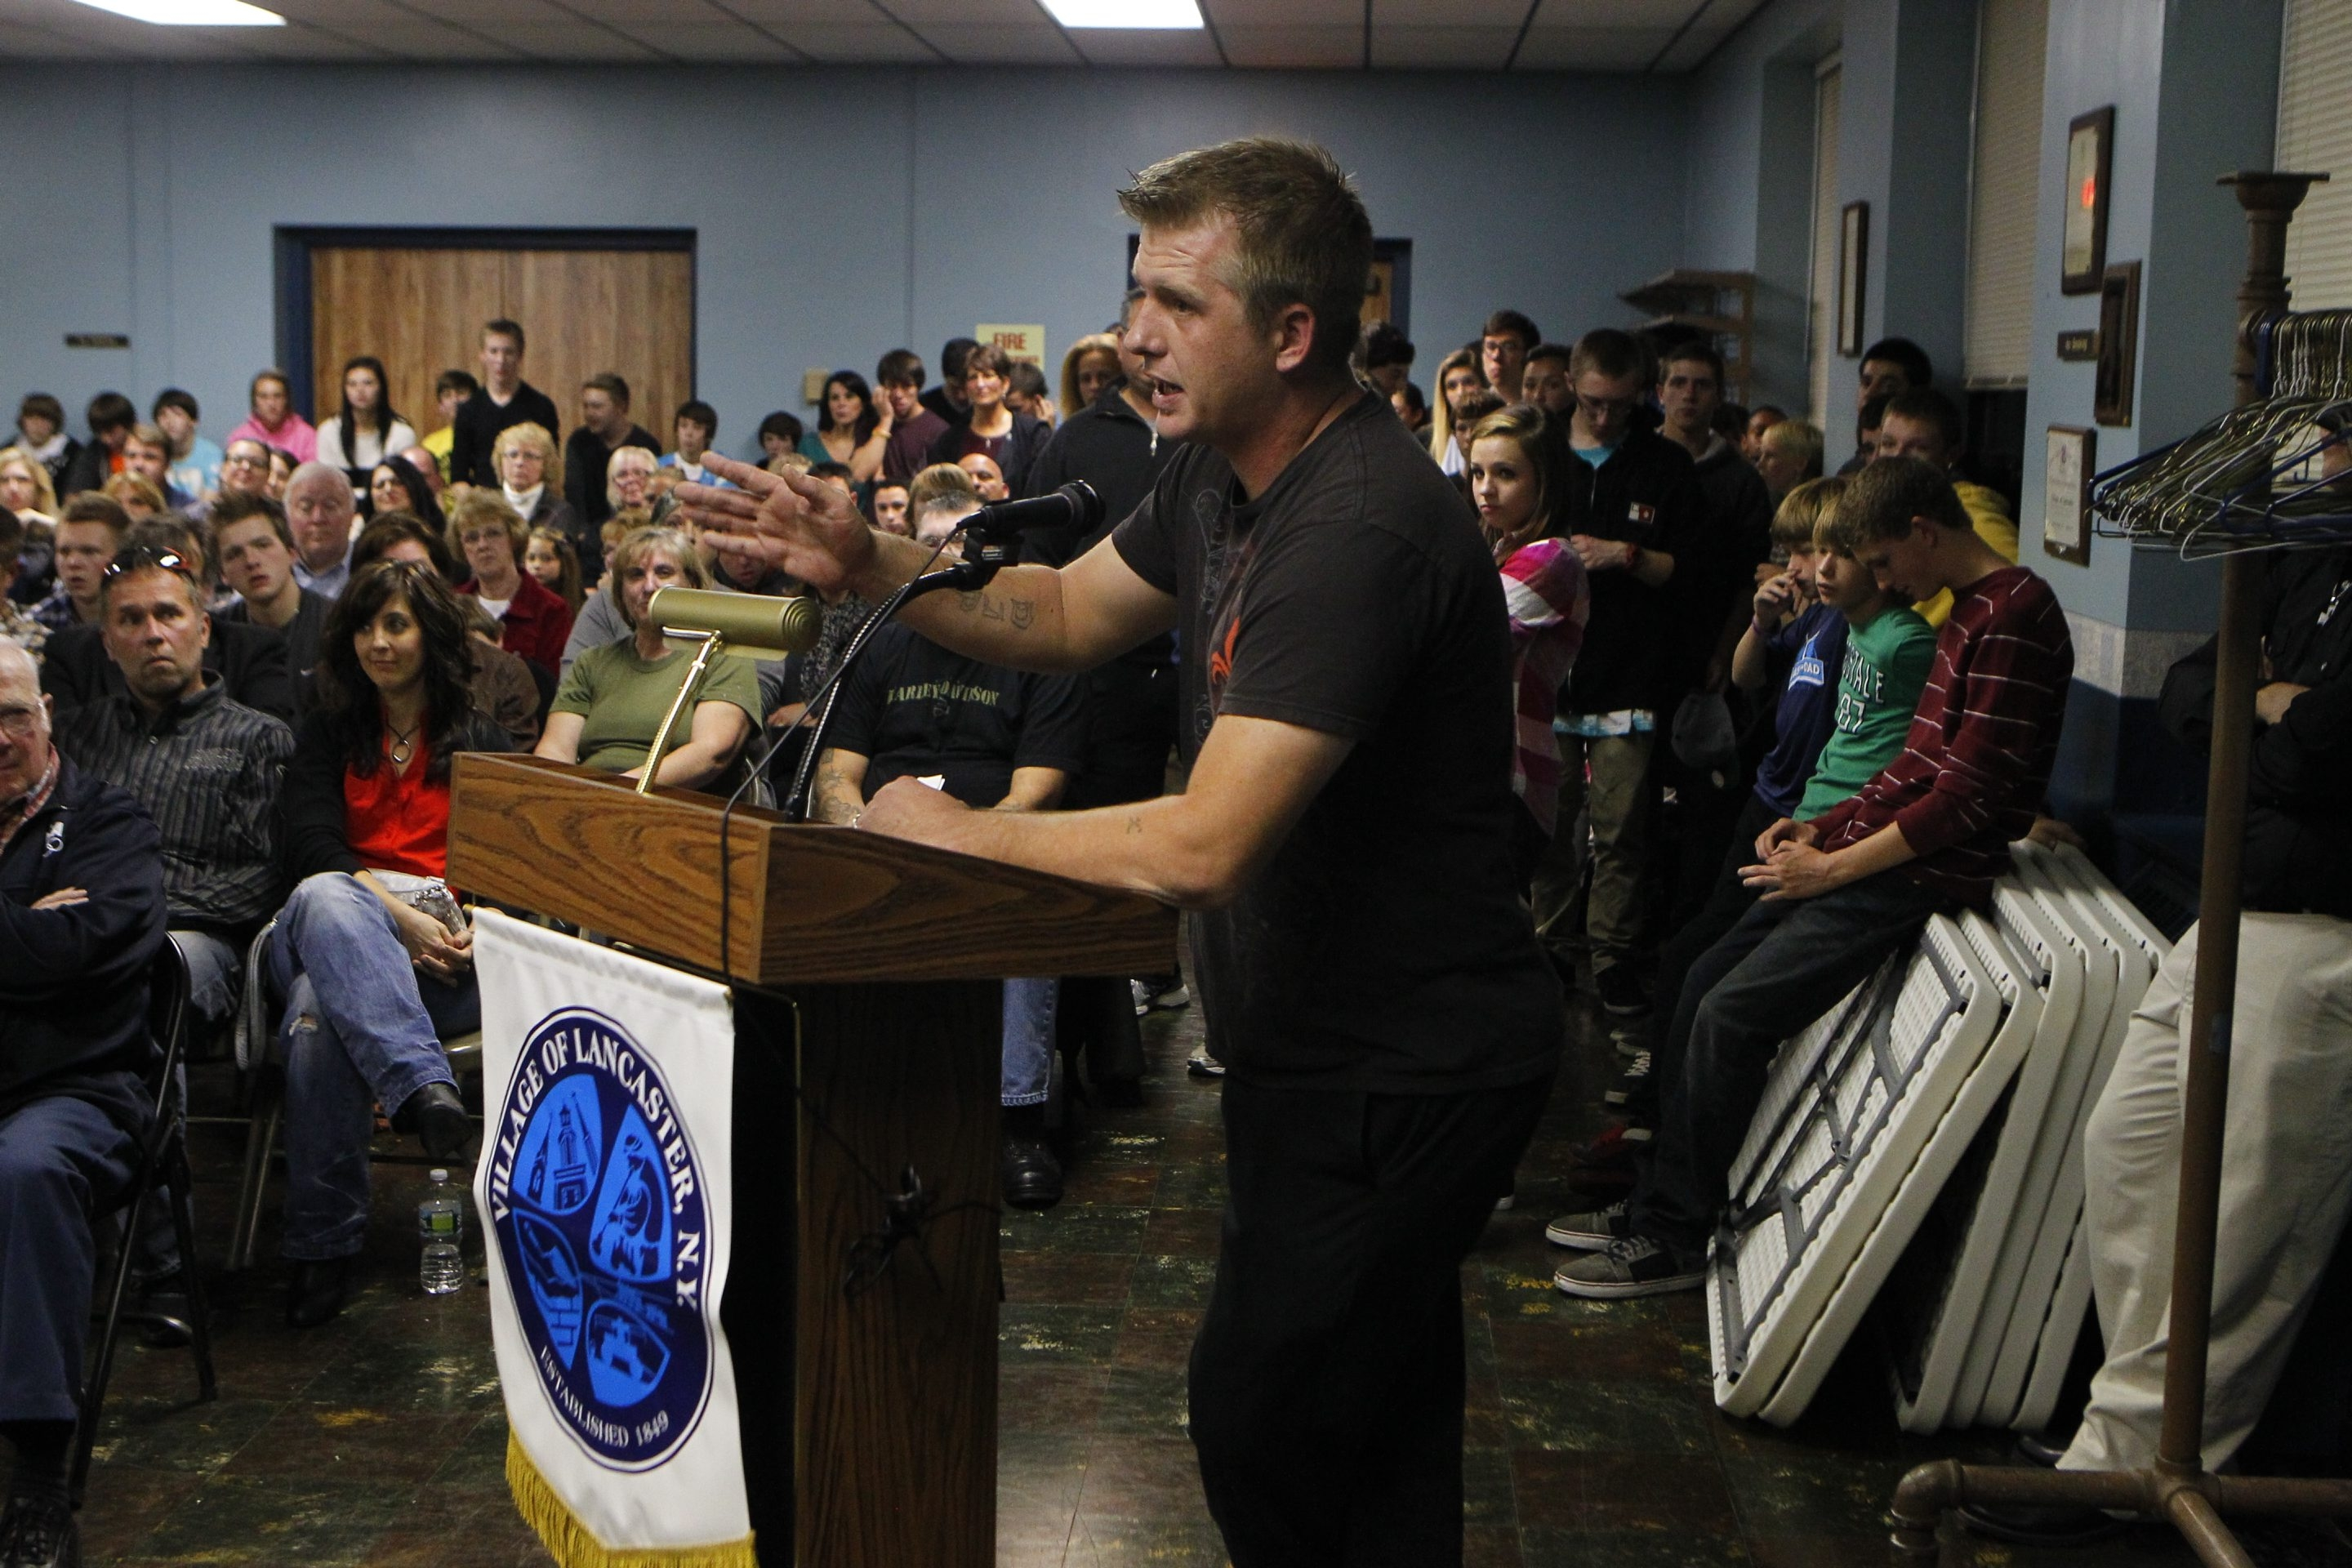 John Hickey/Buffalo News    Dan Prichard, owner of Sirens Skateshop, speaks Monday night at the Lancaster Village Board meeting.